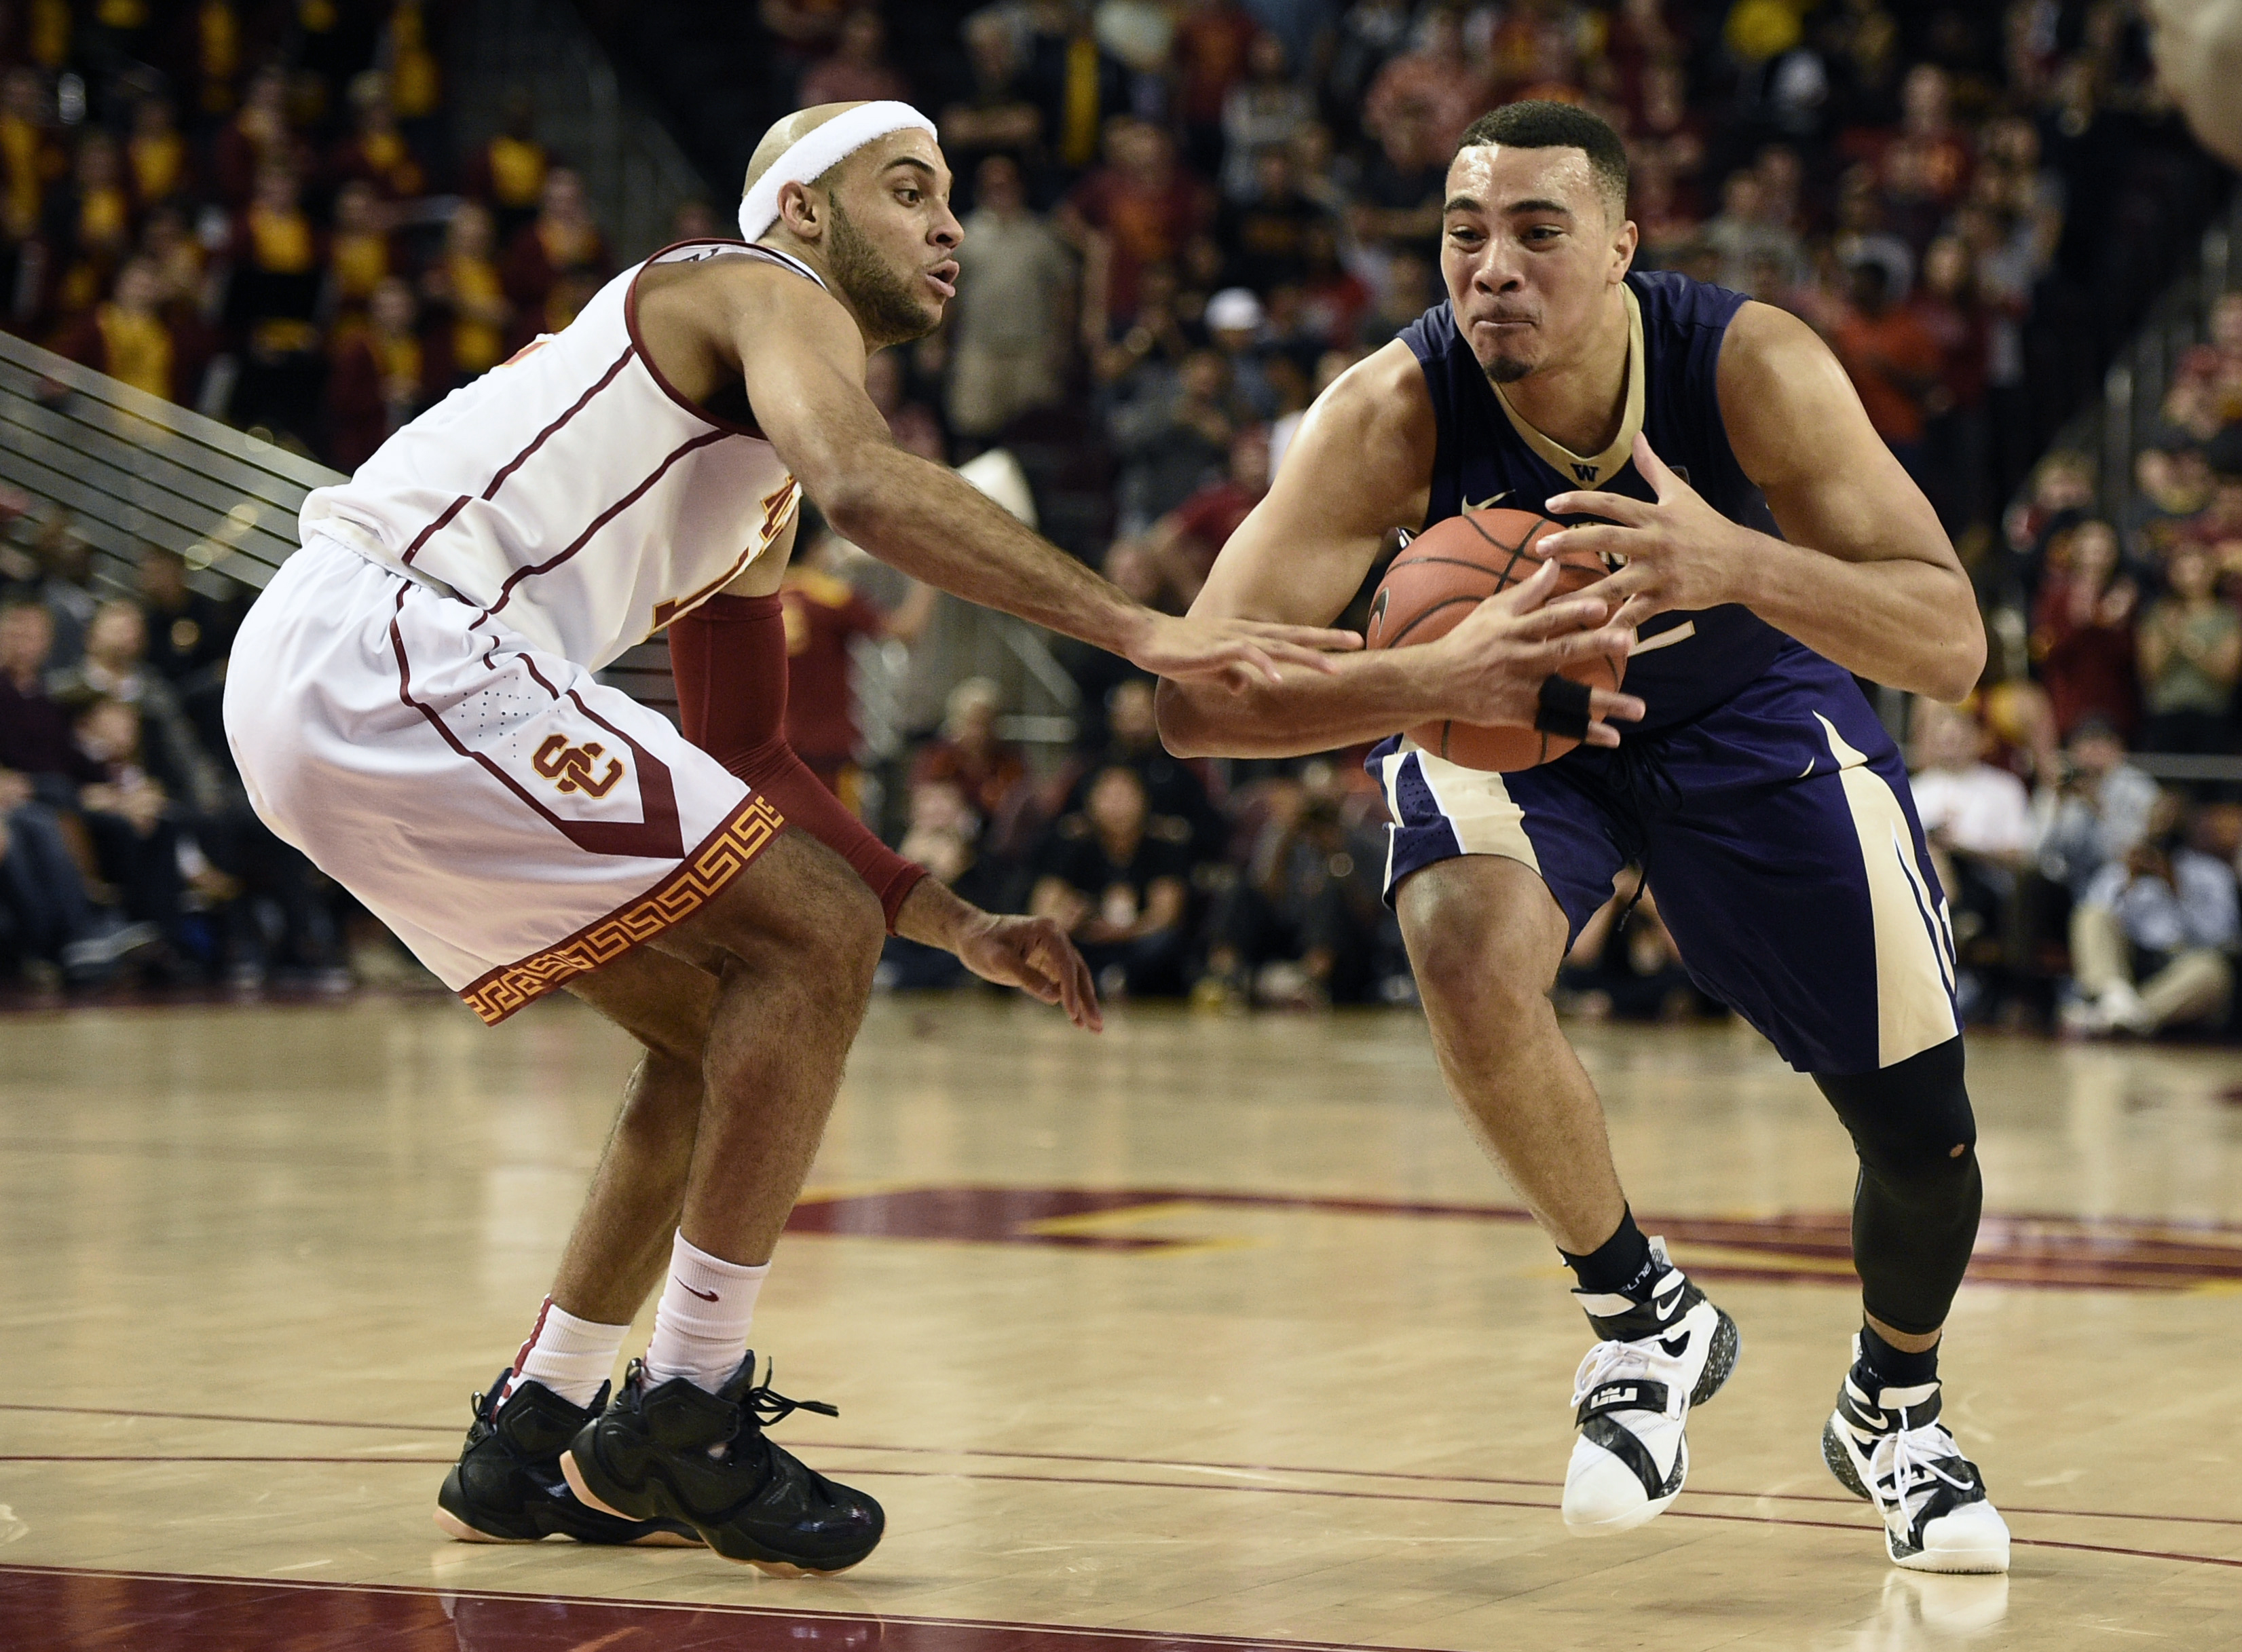 Washington guard Andrew Andrews, right, drives the ball by Southern California guard Julian Jacobs, left, during the first half of an NCAA college basketball game in Los Angeles, Saturday, Jan. 30, 2016. (AP Photo/Kelvin Kuo)